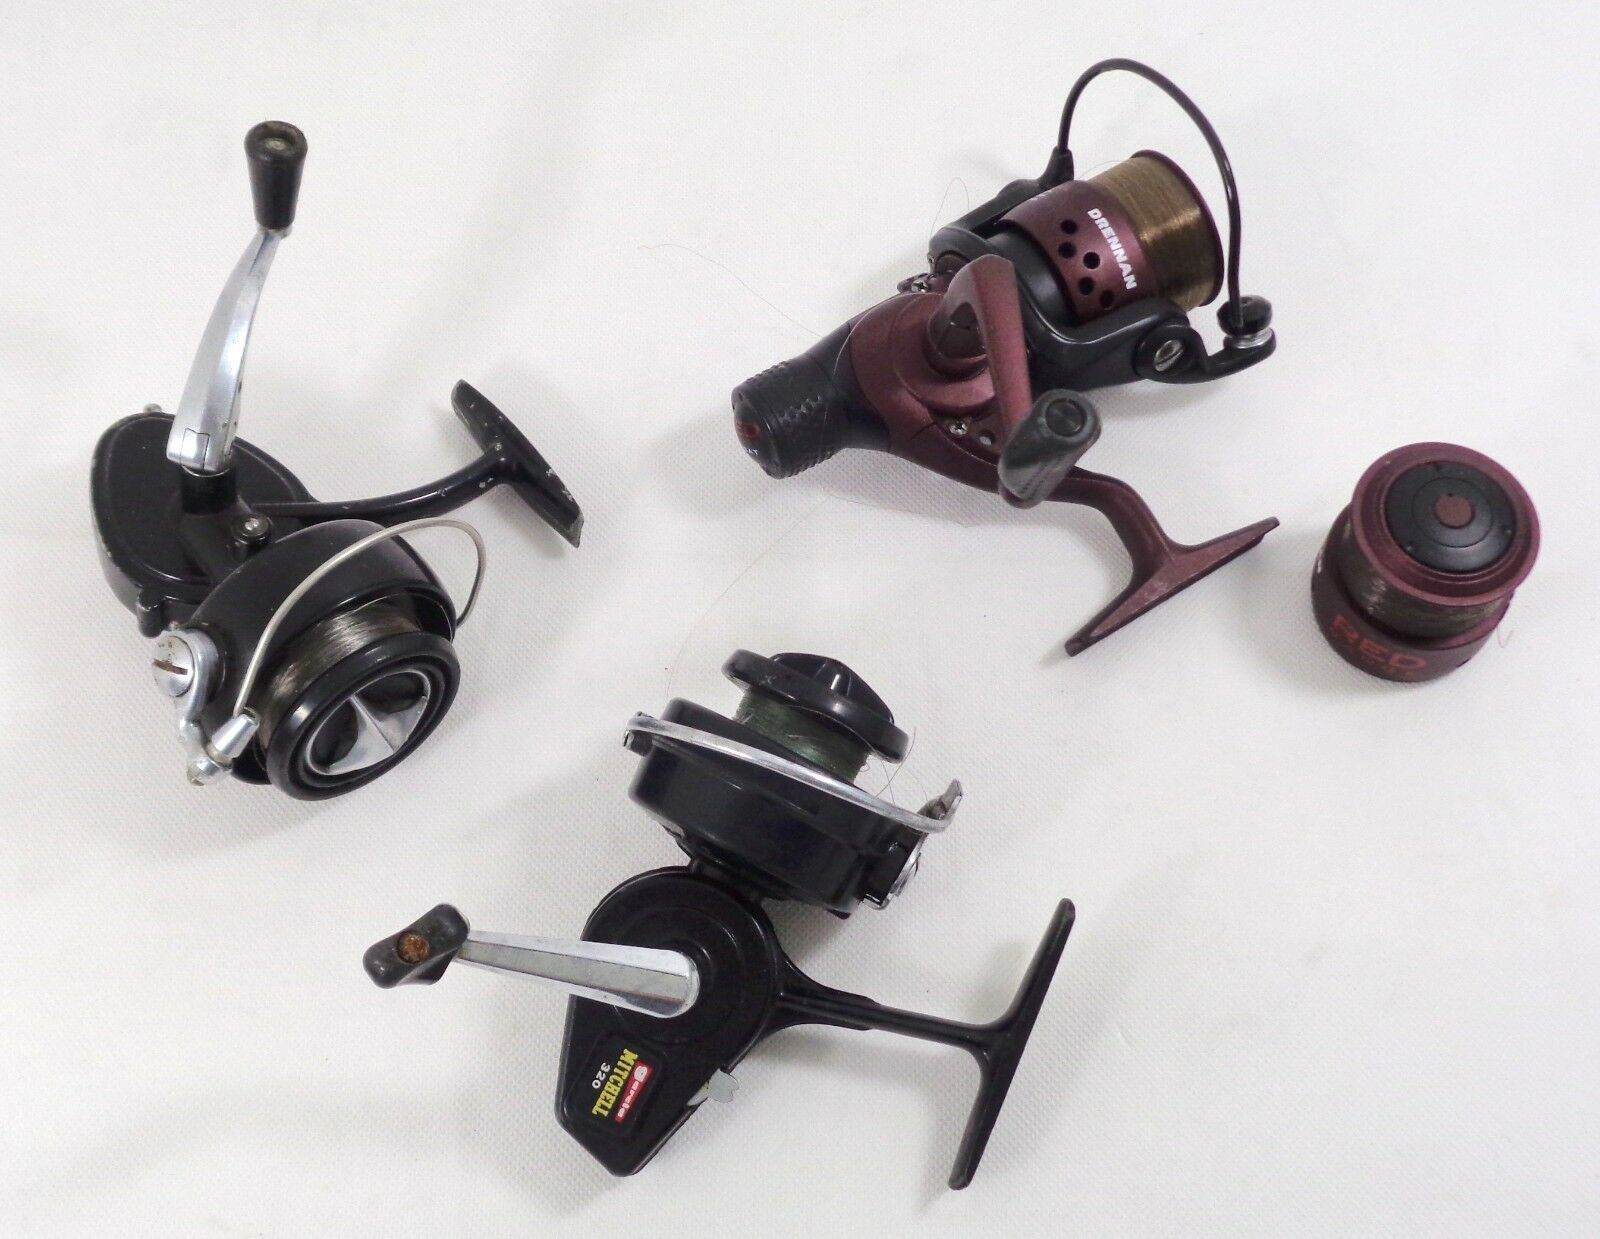 Bundle  of 3 Fishing Reel Drennan Red Range, Mitchell 320, KP Morritt's Elite  welcome to buy